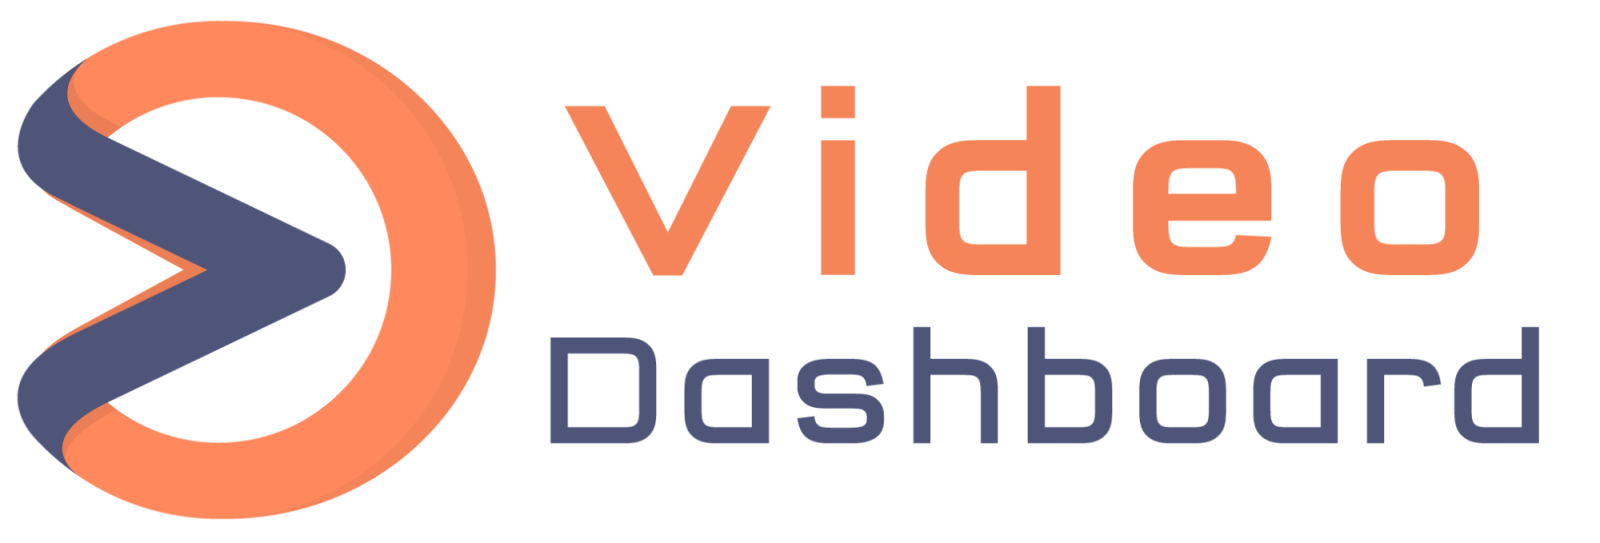 VIDEO DASHBOARD REVIEW 4 (1)